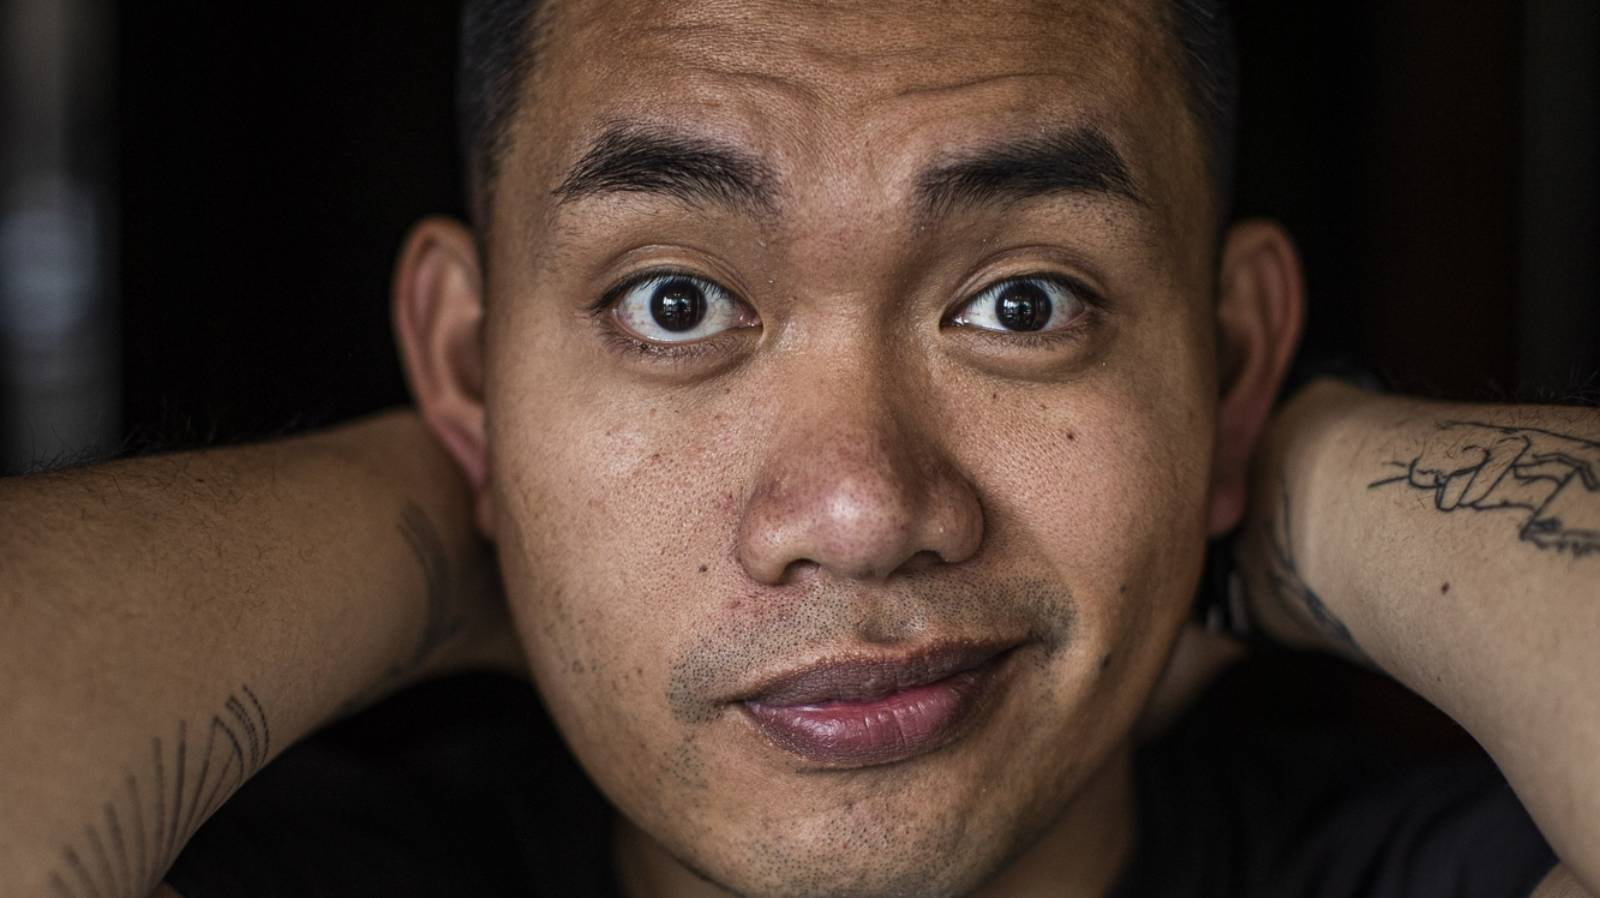 James Roque tackles skin whitening at comedy show